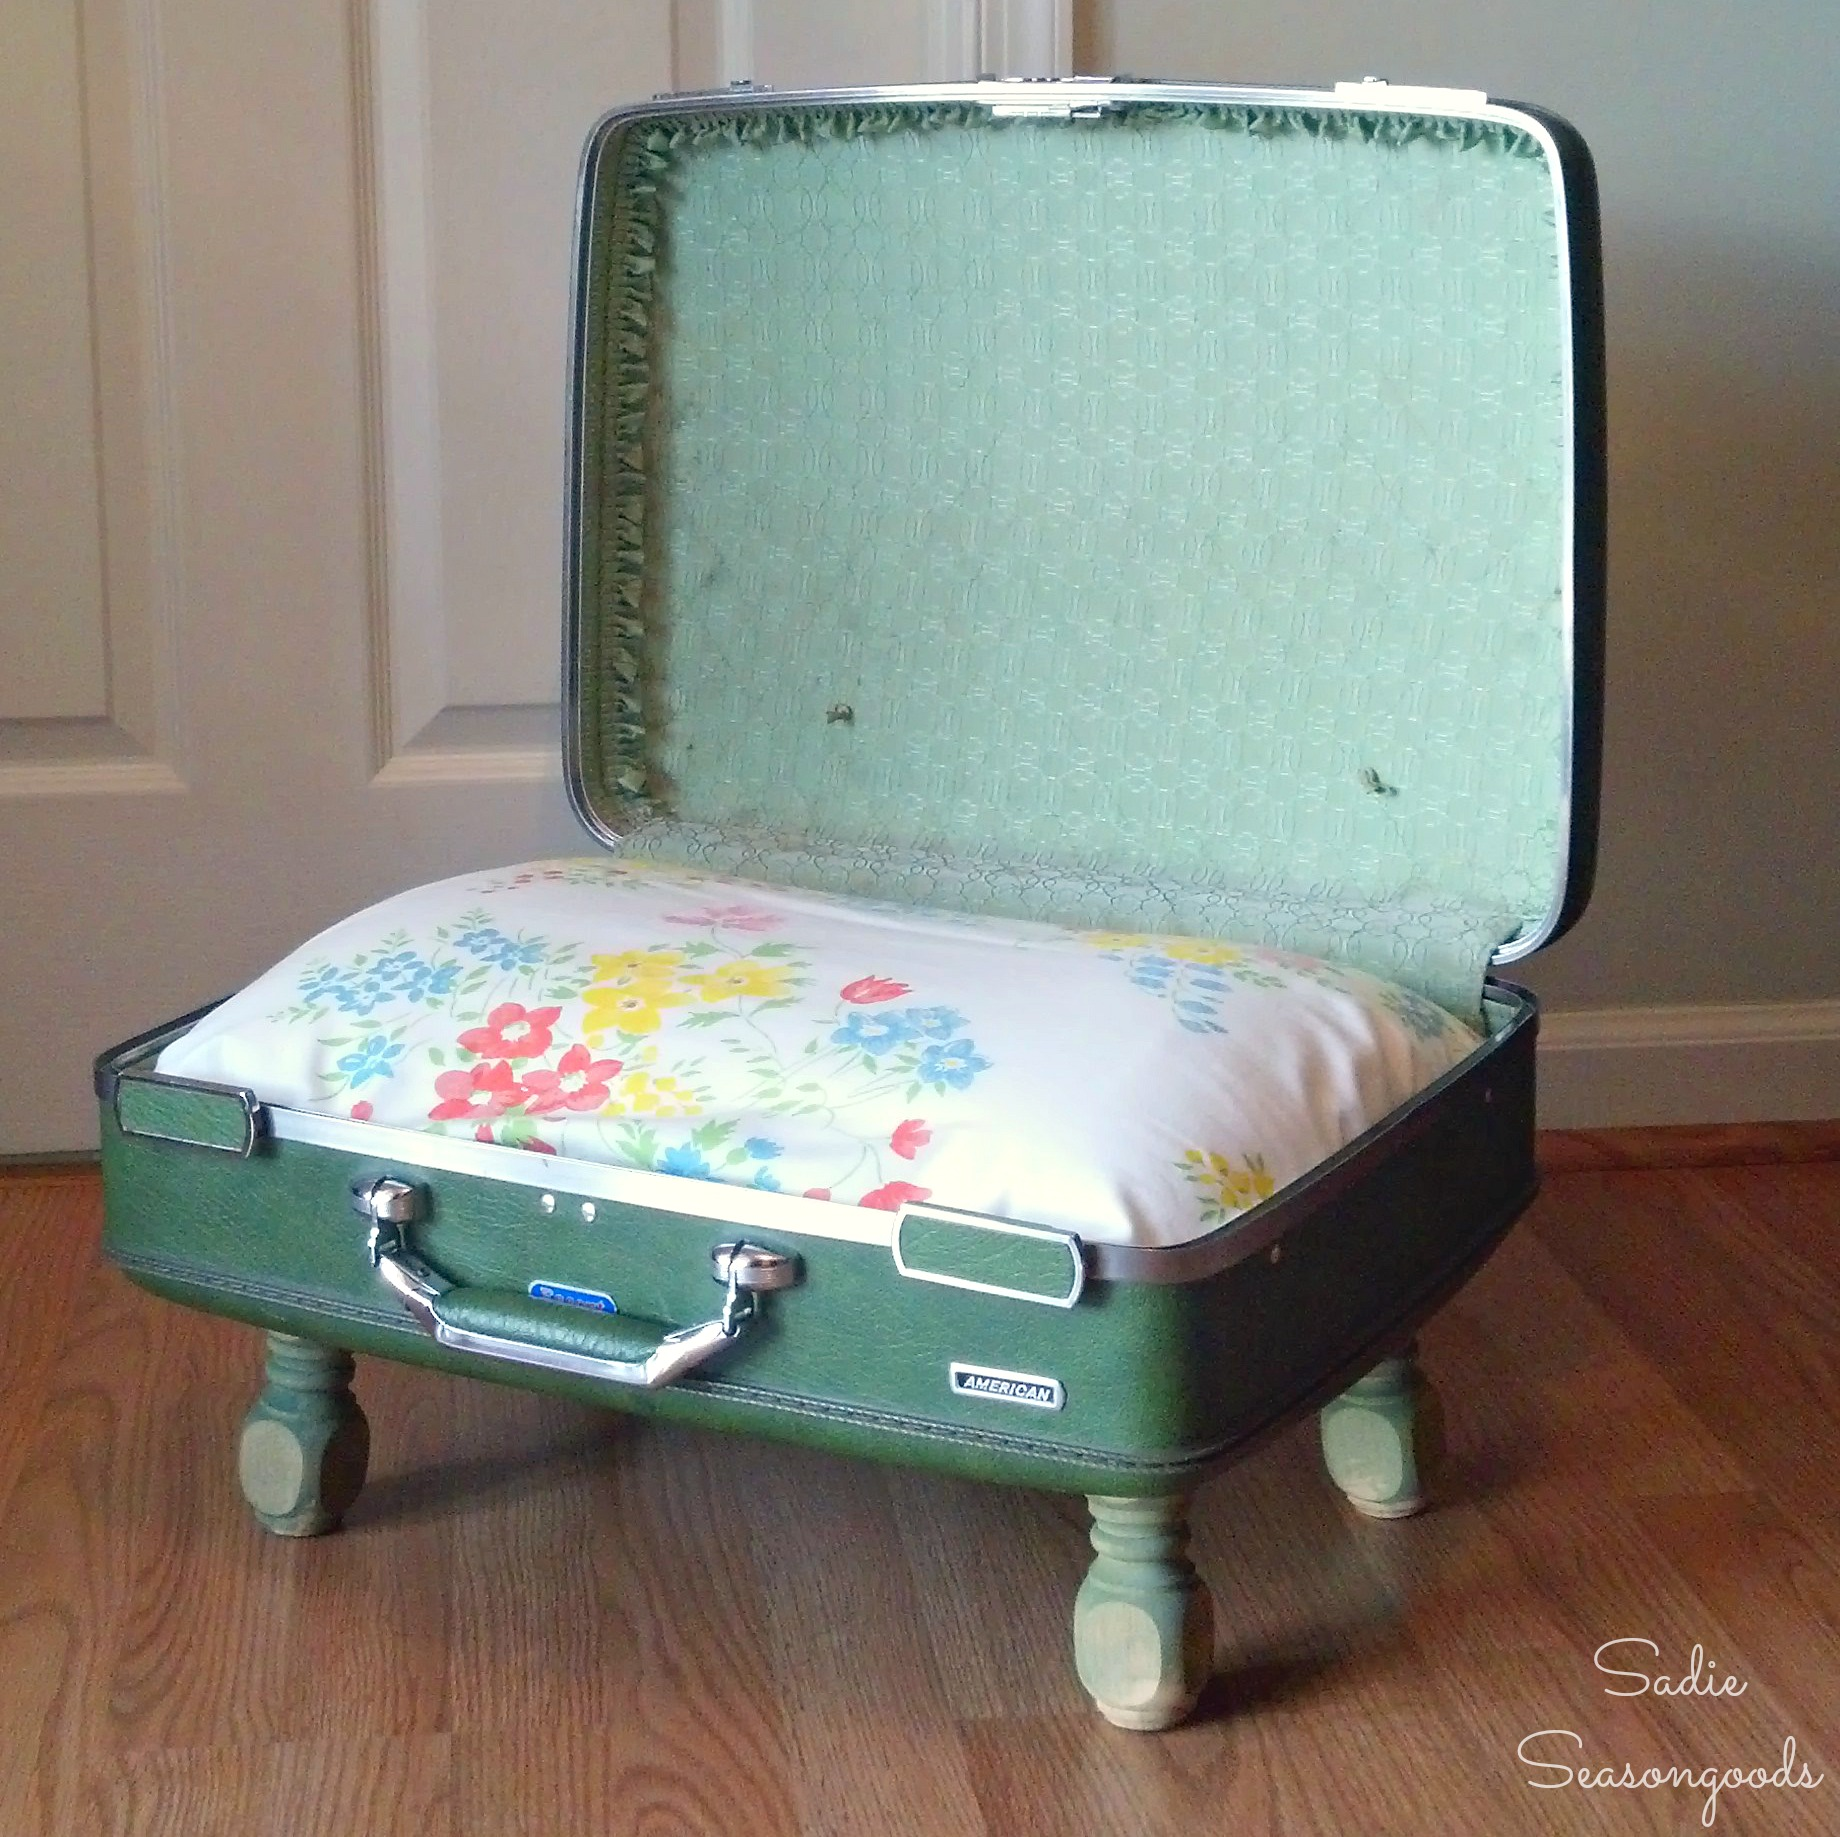 Old Suitcases Arenu0027t Just For Grown Ups, They Can Be Adapted For Pets Too!  8. Vintage Suitcase Sidetable U2013 Pillarboxblue